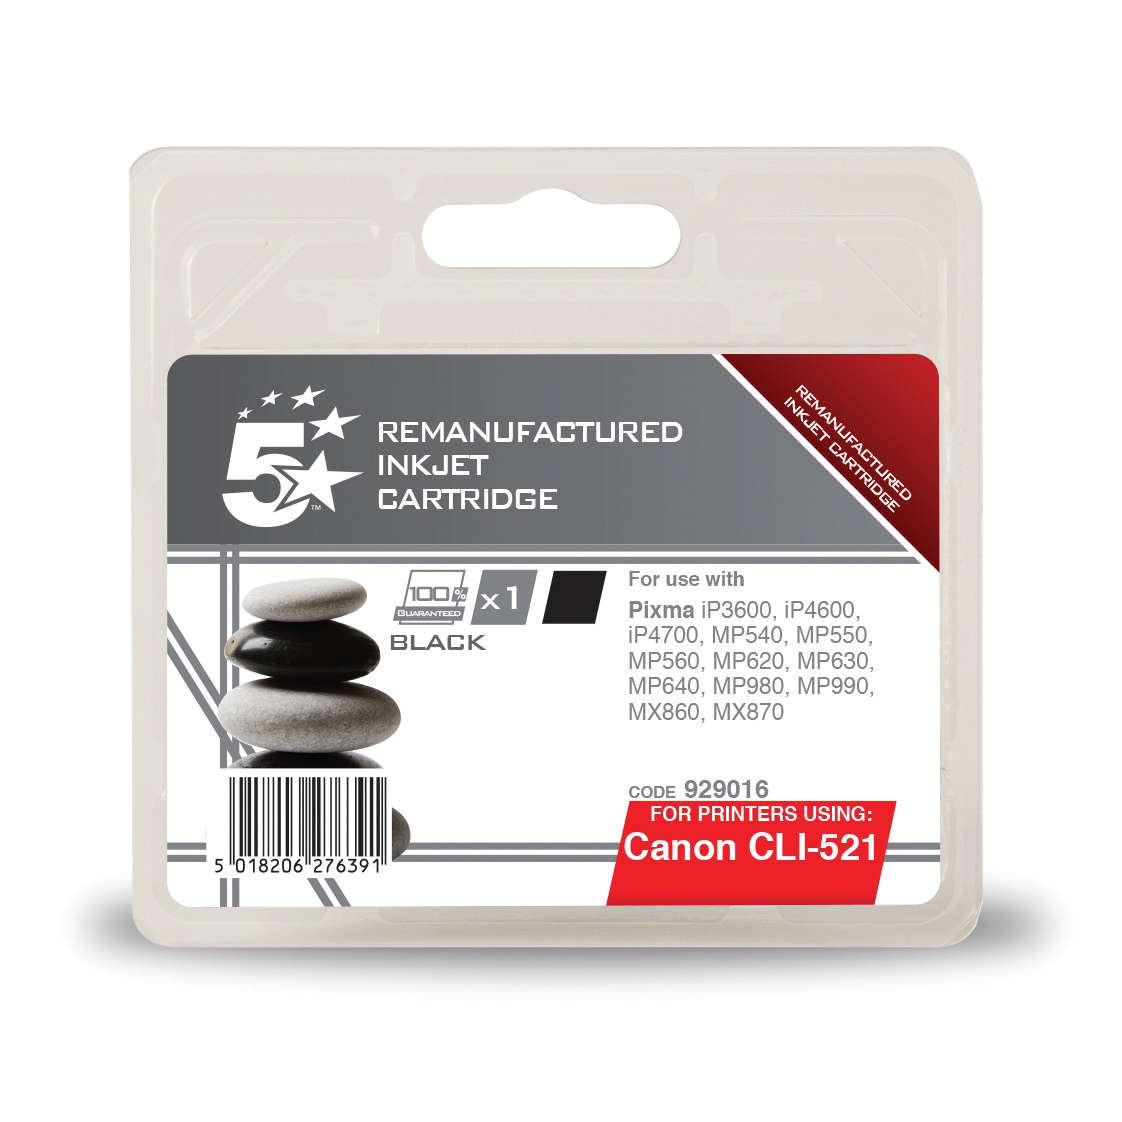 5 Star Office Remanufactured Inkjet Cartridge Page Life 3425pp 9ml Black [Canon CLI-521BK Alternative]